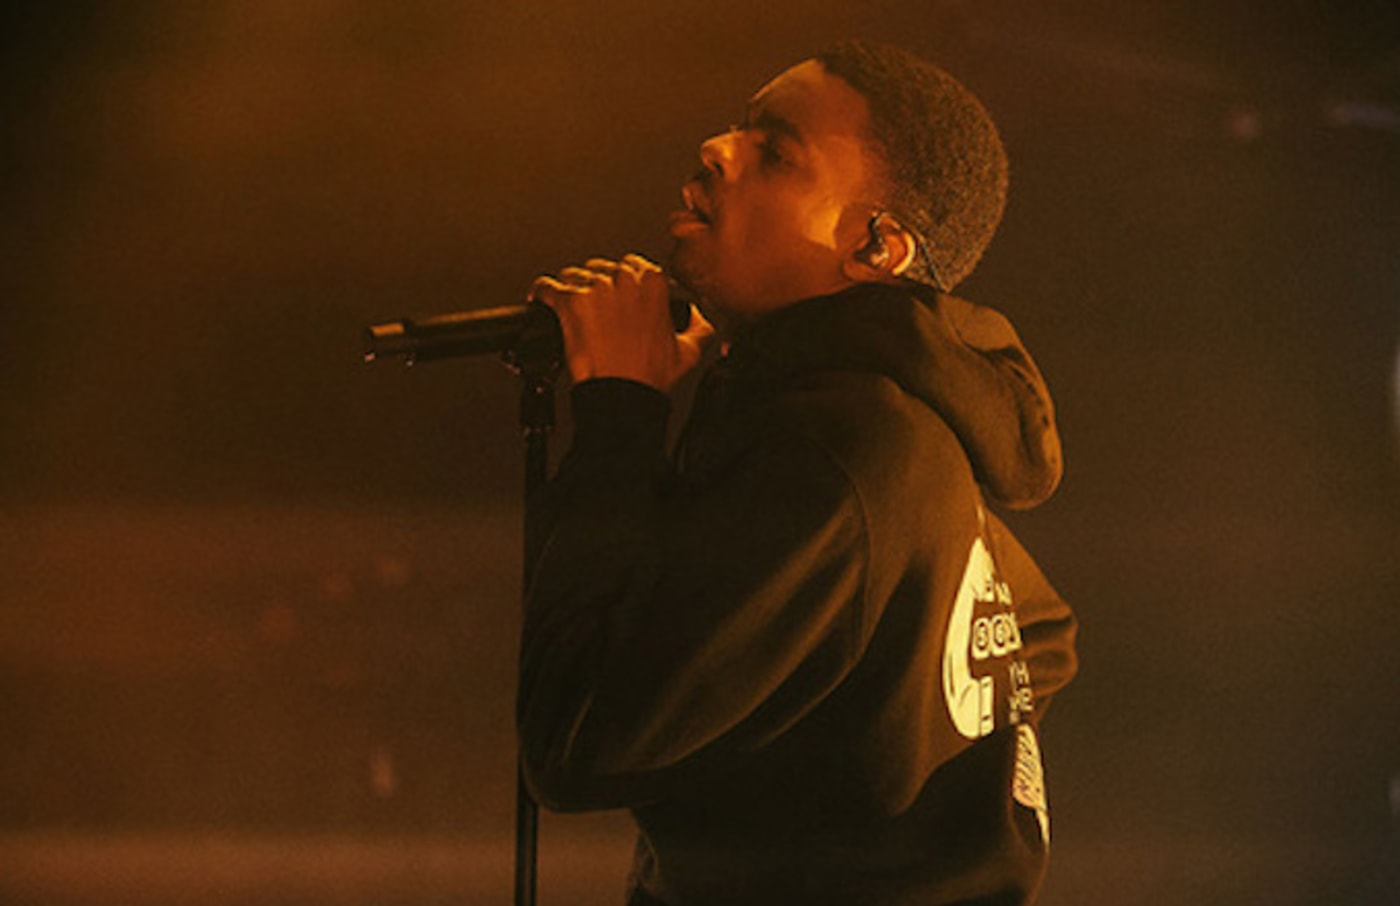 Vince Staples performs at concert.